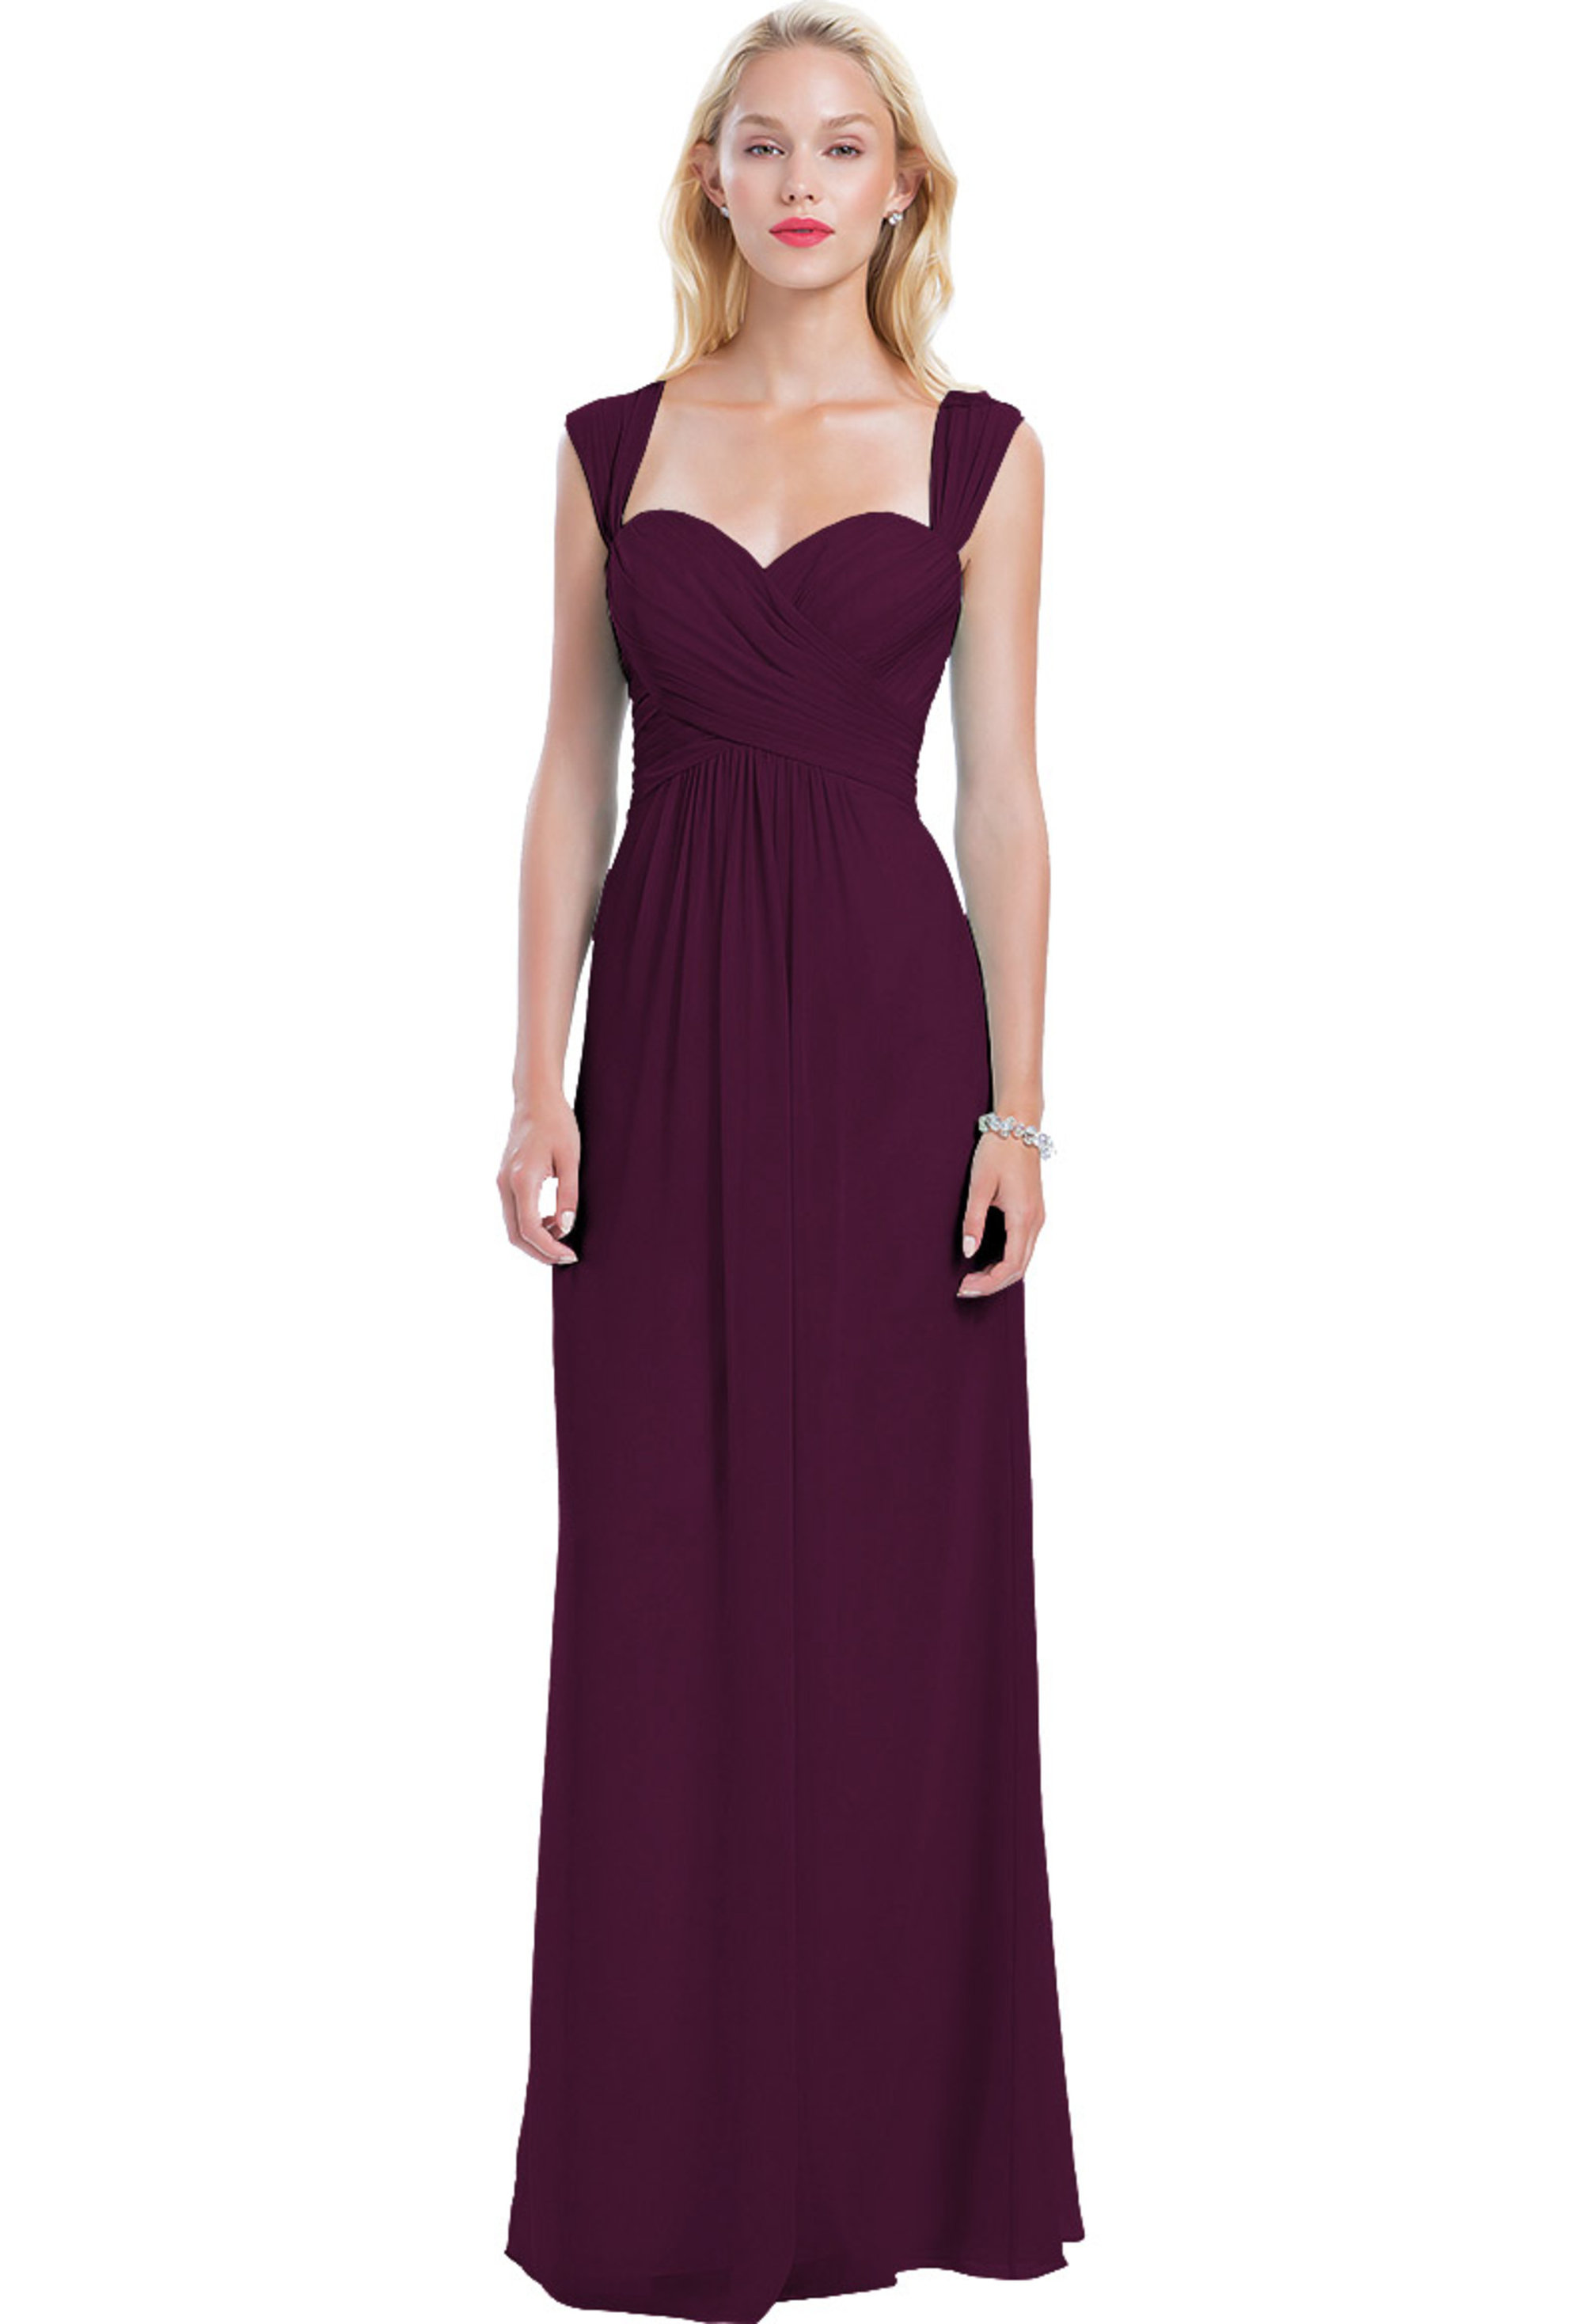 Bill Levkoff SANGRIA Chiffon Sweetheart A-line gown, $210.00 Front